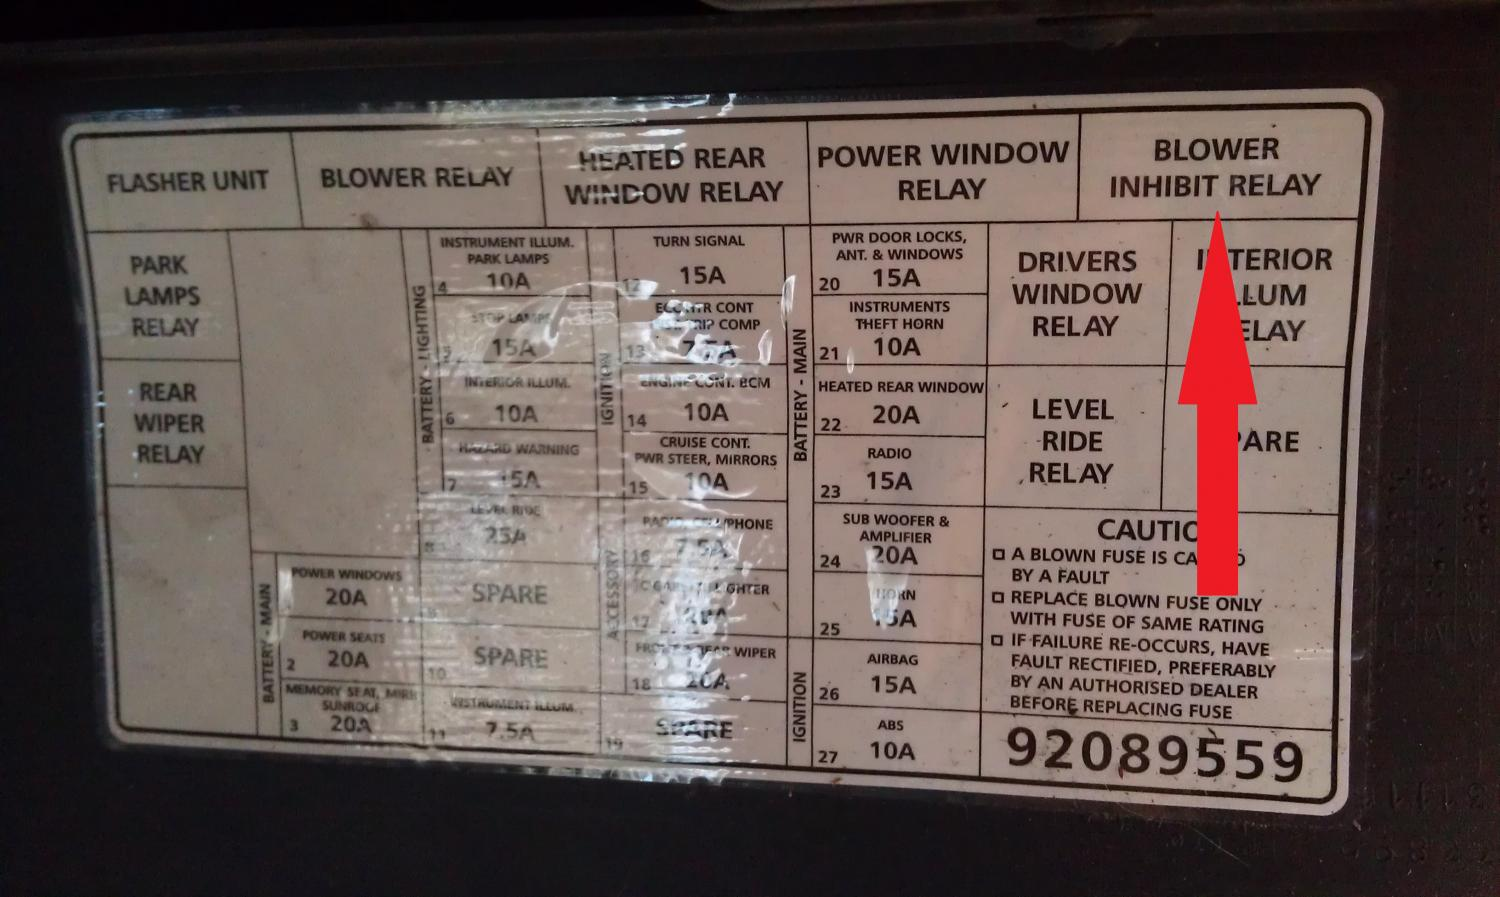 Thread vx ss air con wiring wire center blower inhibit relay missing just commodores rh forums justcommodores com au 1996 holden vz commodore holden commodore vr cheapraybanclubmaster Images